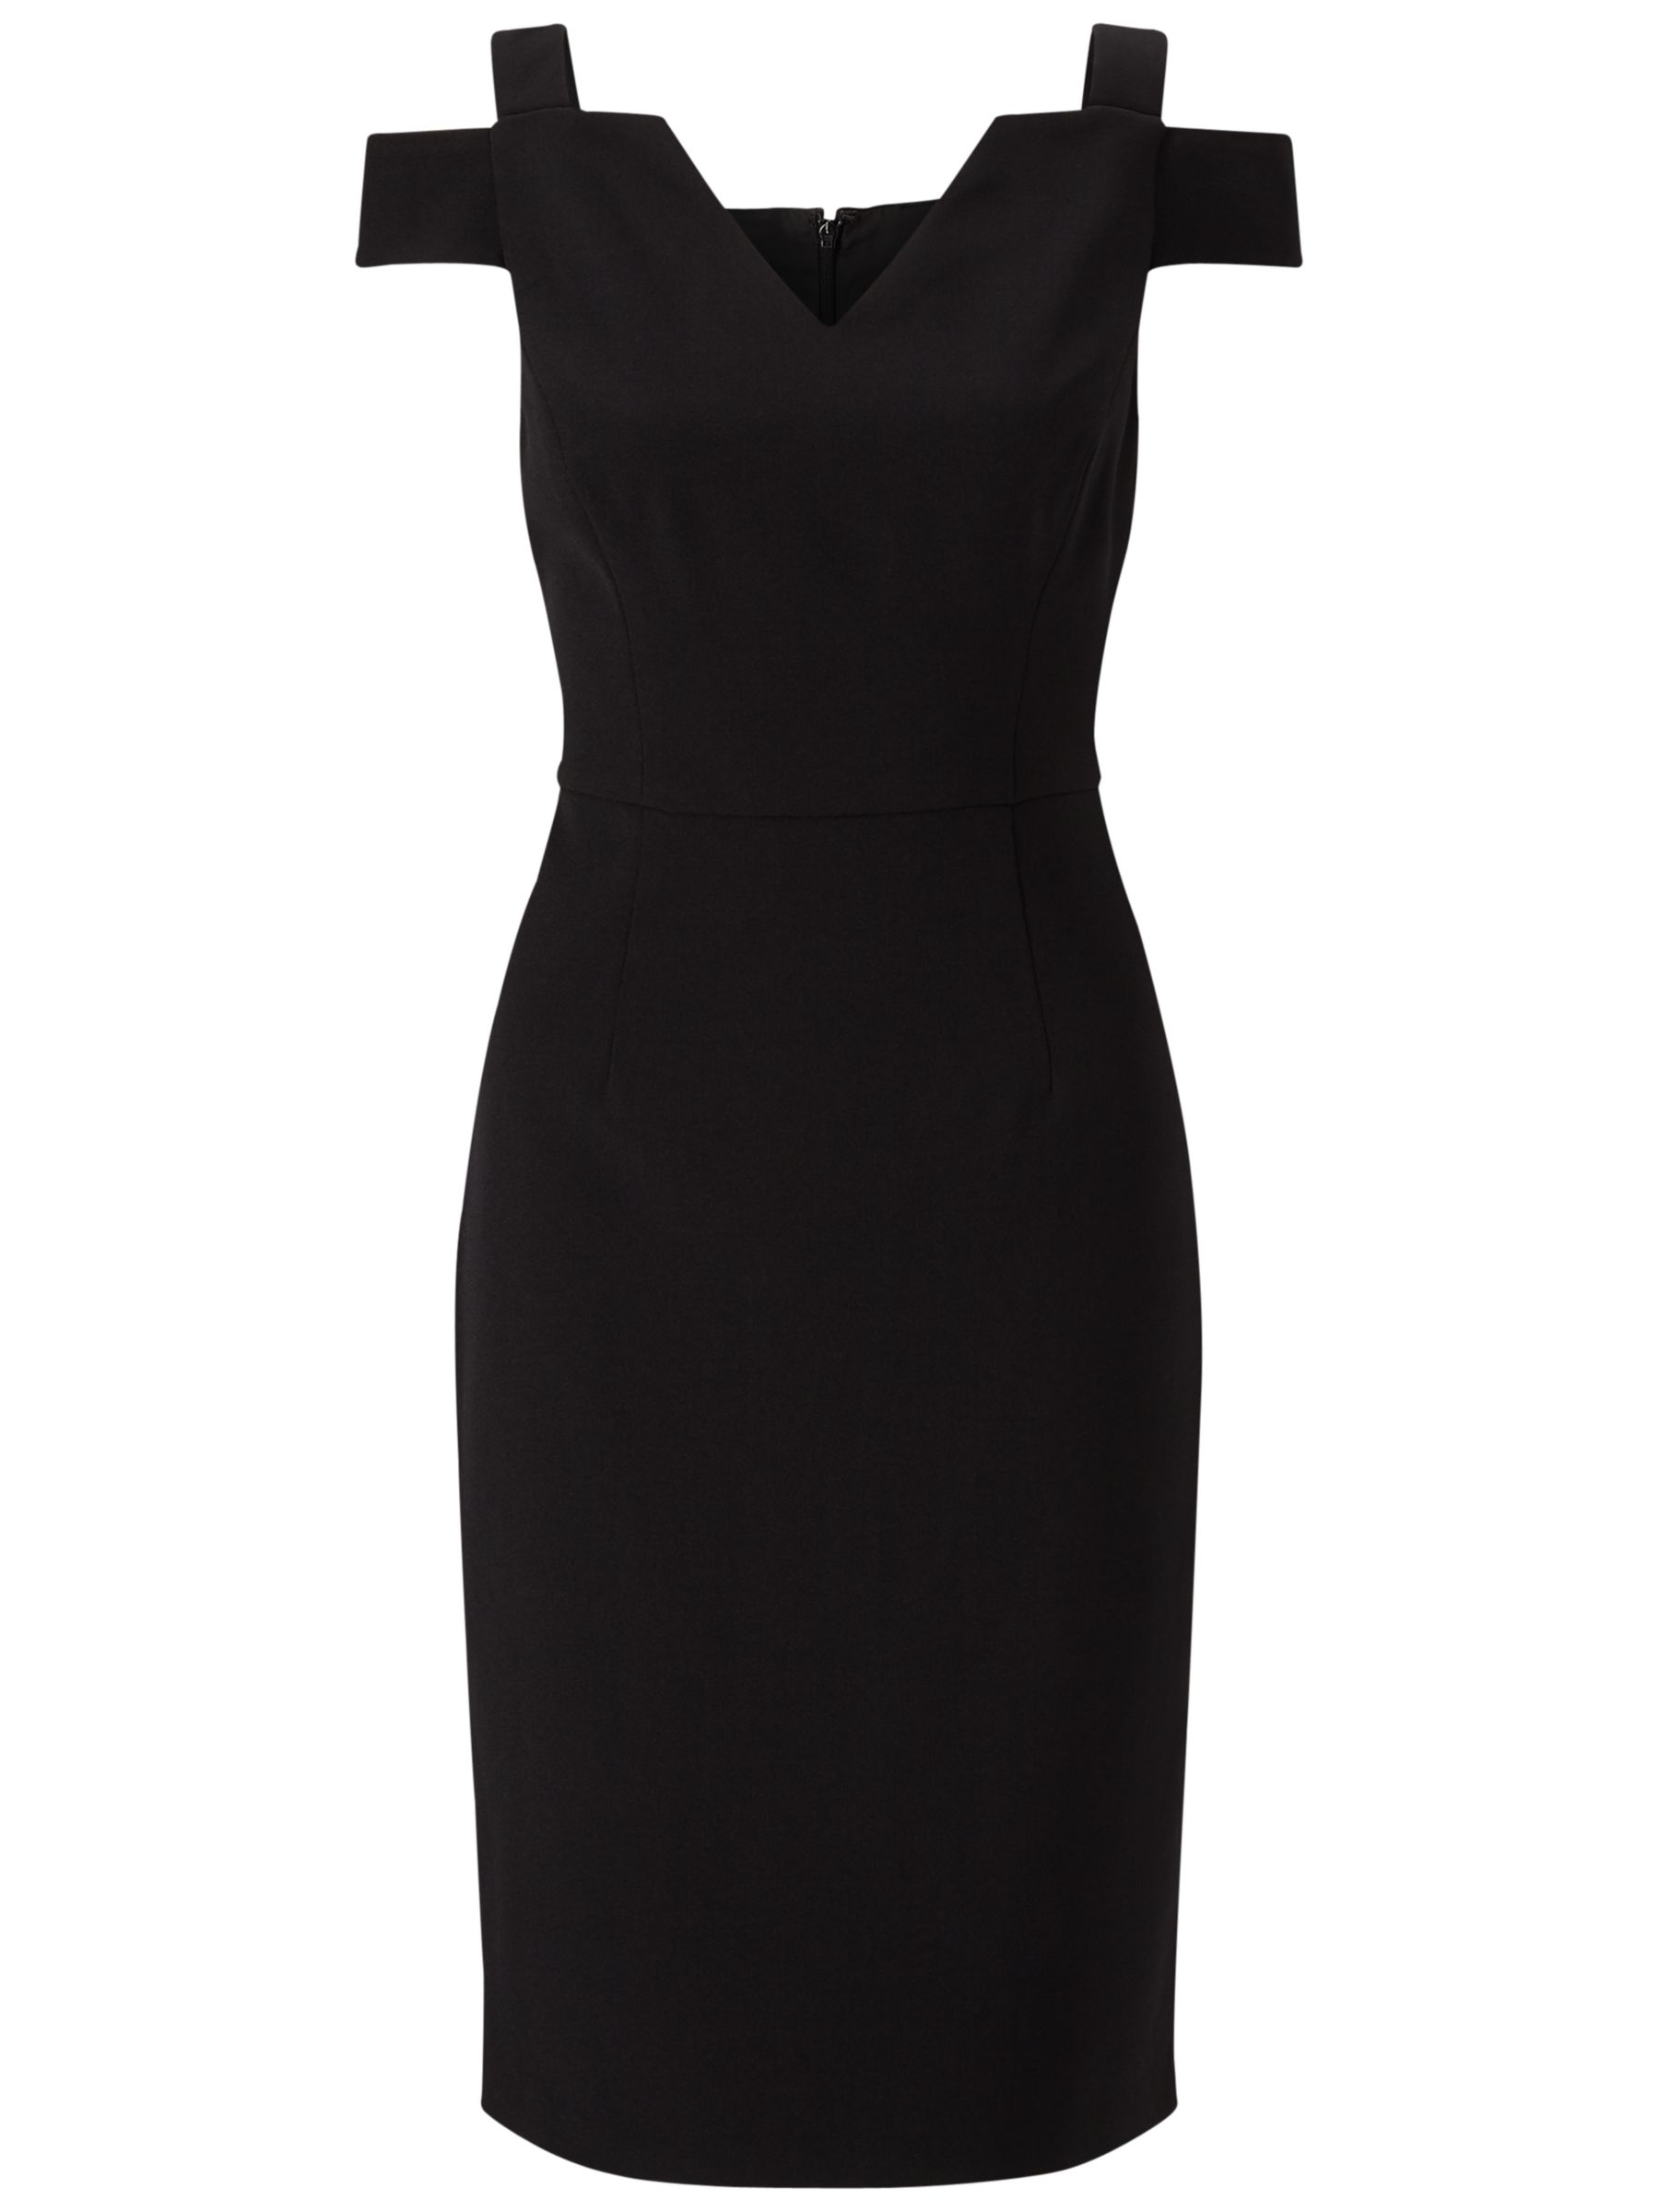 Adrianna Papell Adrianna Papell Cold Shoulder Fitted Sheath Dress, Black